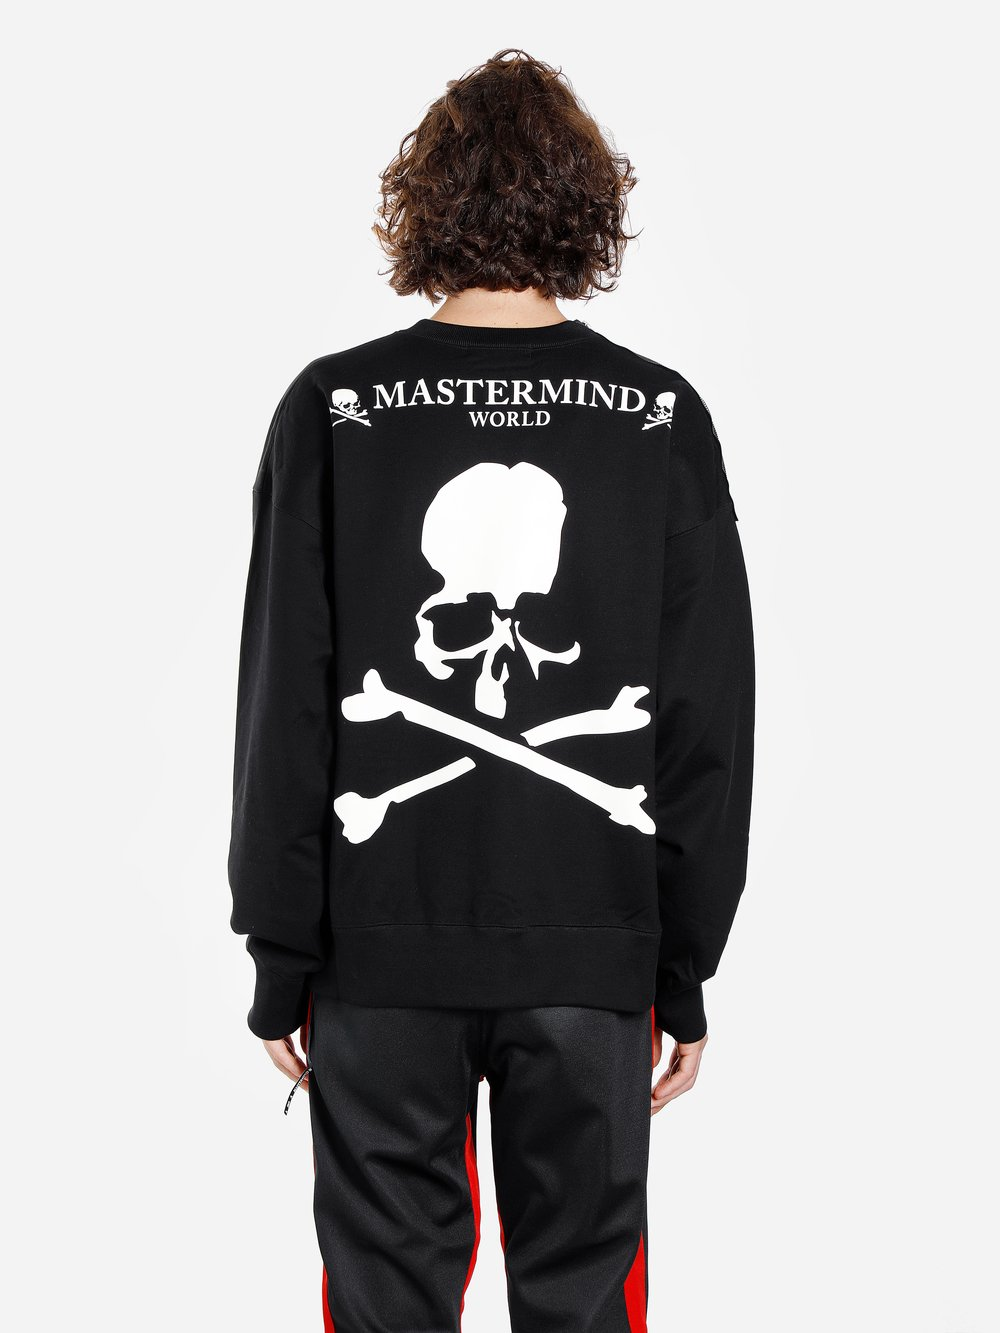 wholesale undefeated x special sales Mastermind World - Sweaters - Antonioli.eu